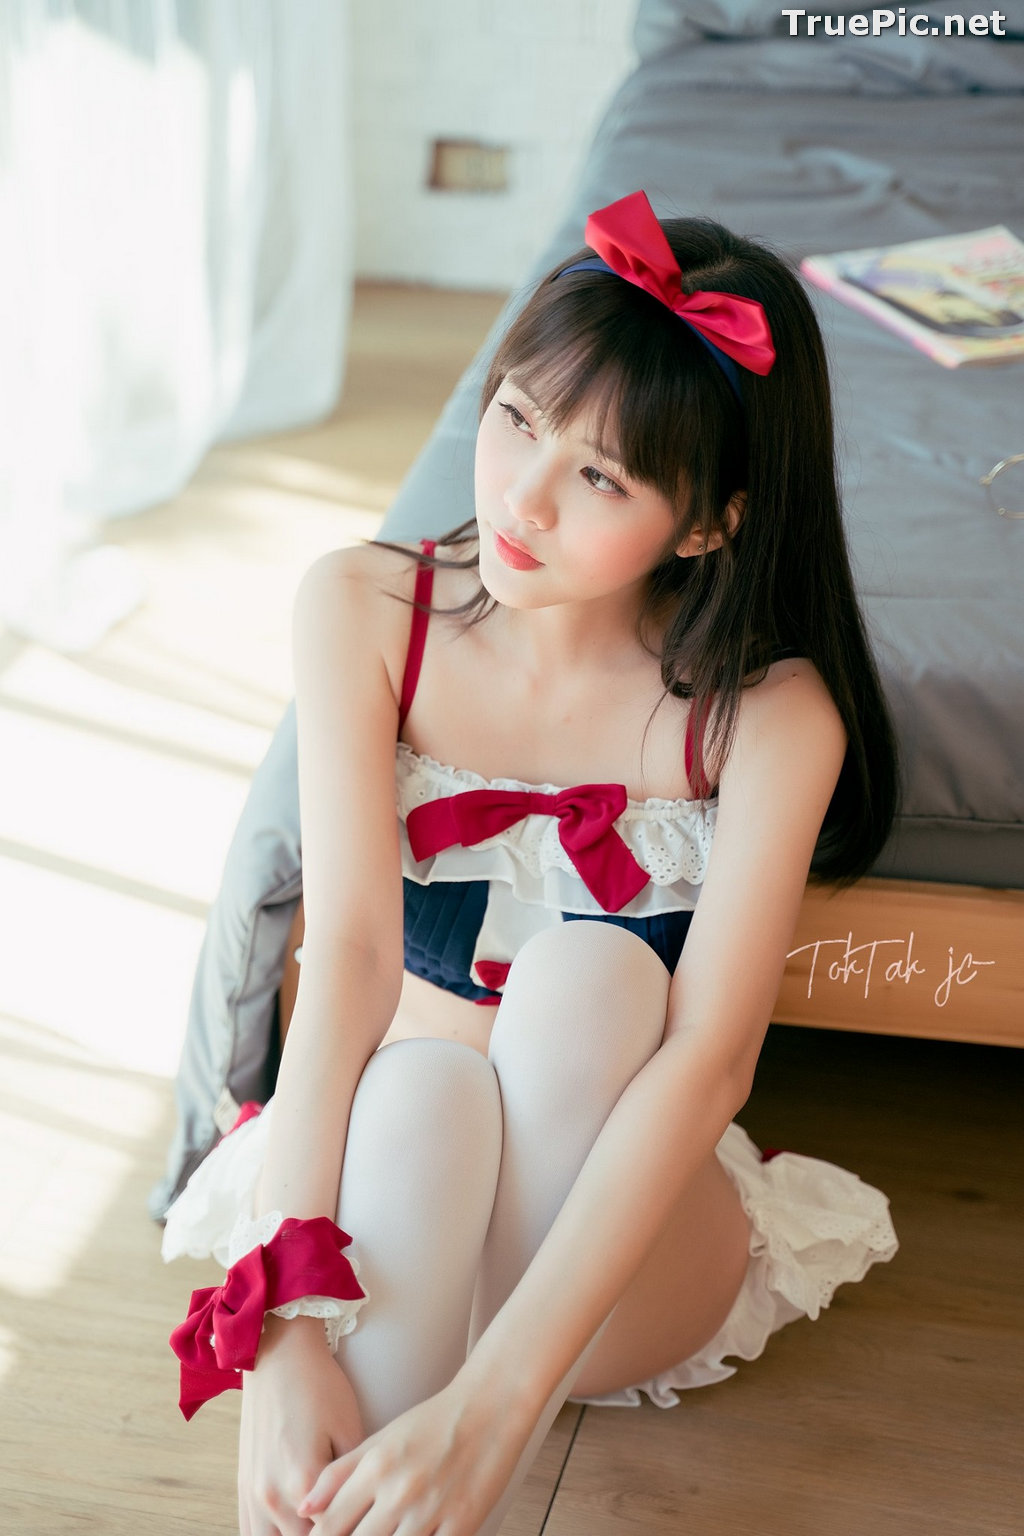 Image Thailand Model - Waralee Teerapanpong - Sailor Moon Lingerie - TruePic.net - Picture-5